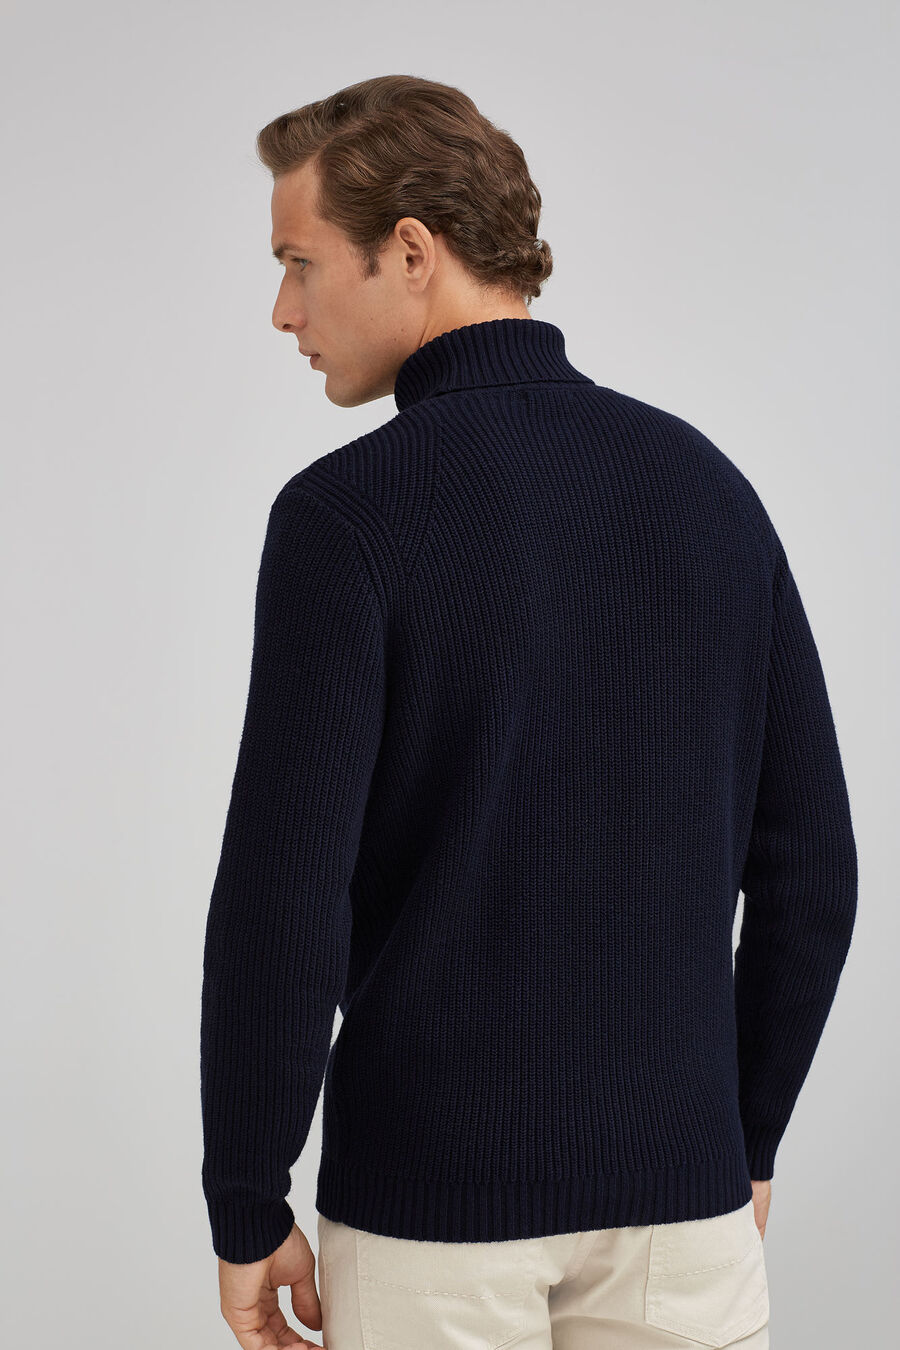 Fisherman's rib jumper